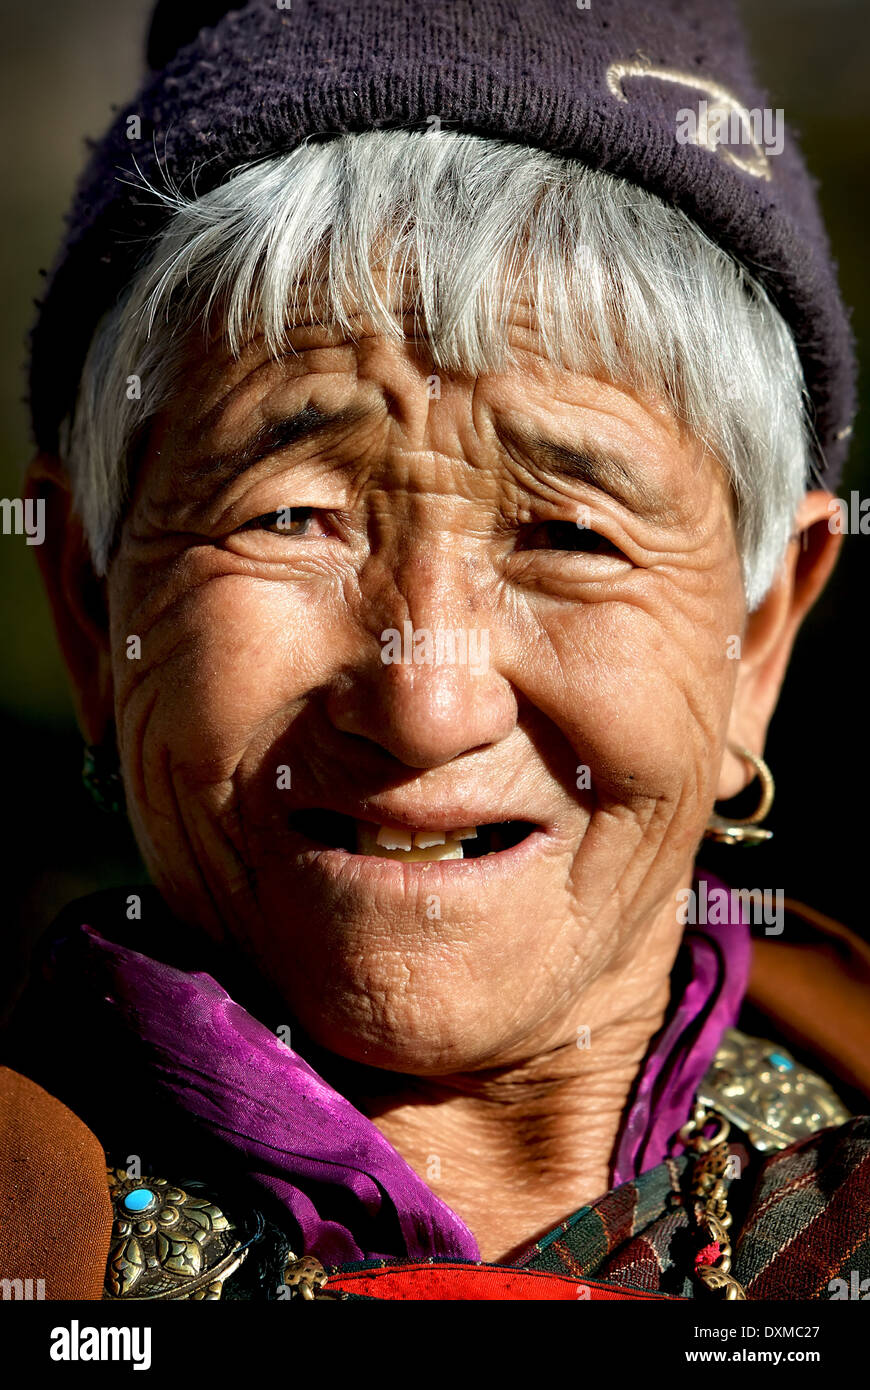 Old woman with woolen hat in Bhutan. Digitally Manipulated Image. Stylised by sharpening and enhancing color. - Stock Image